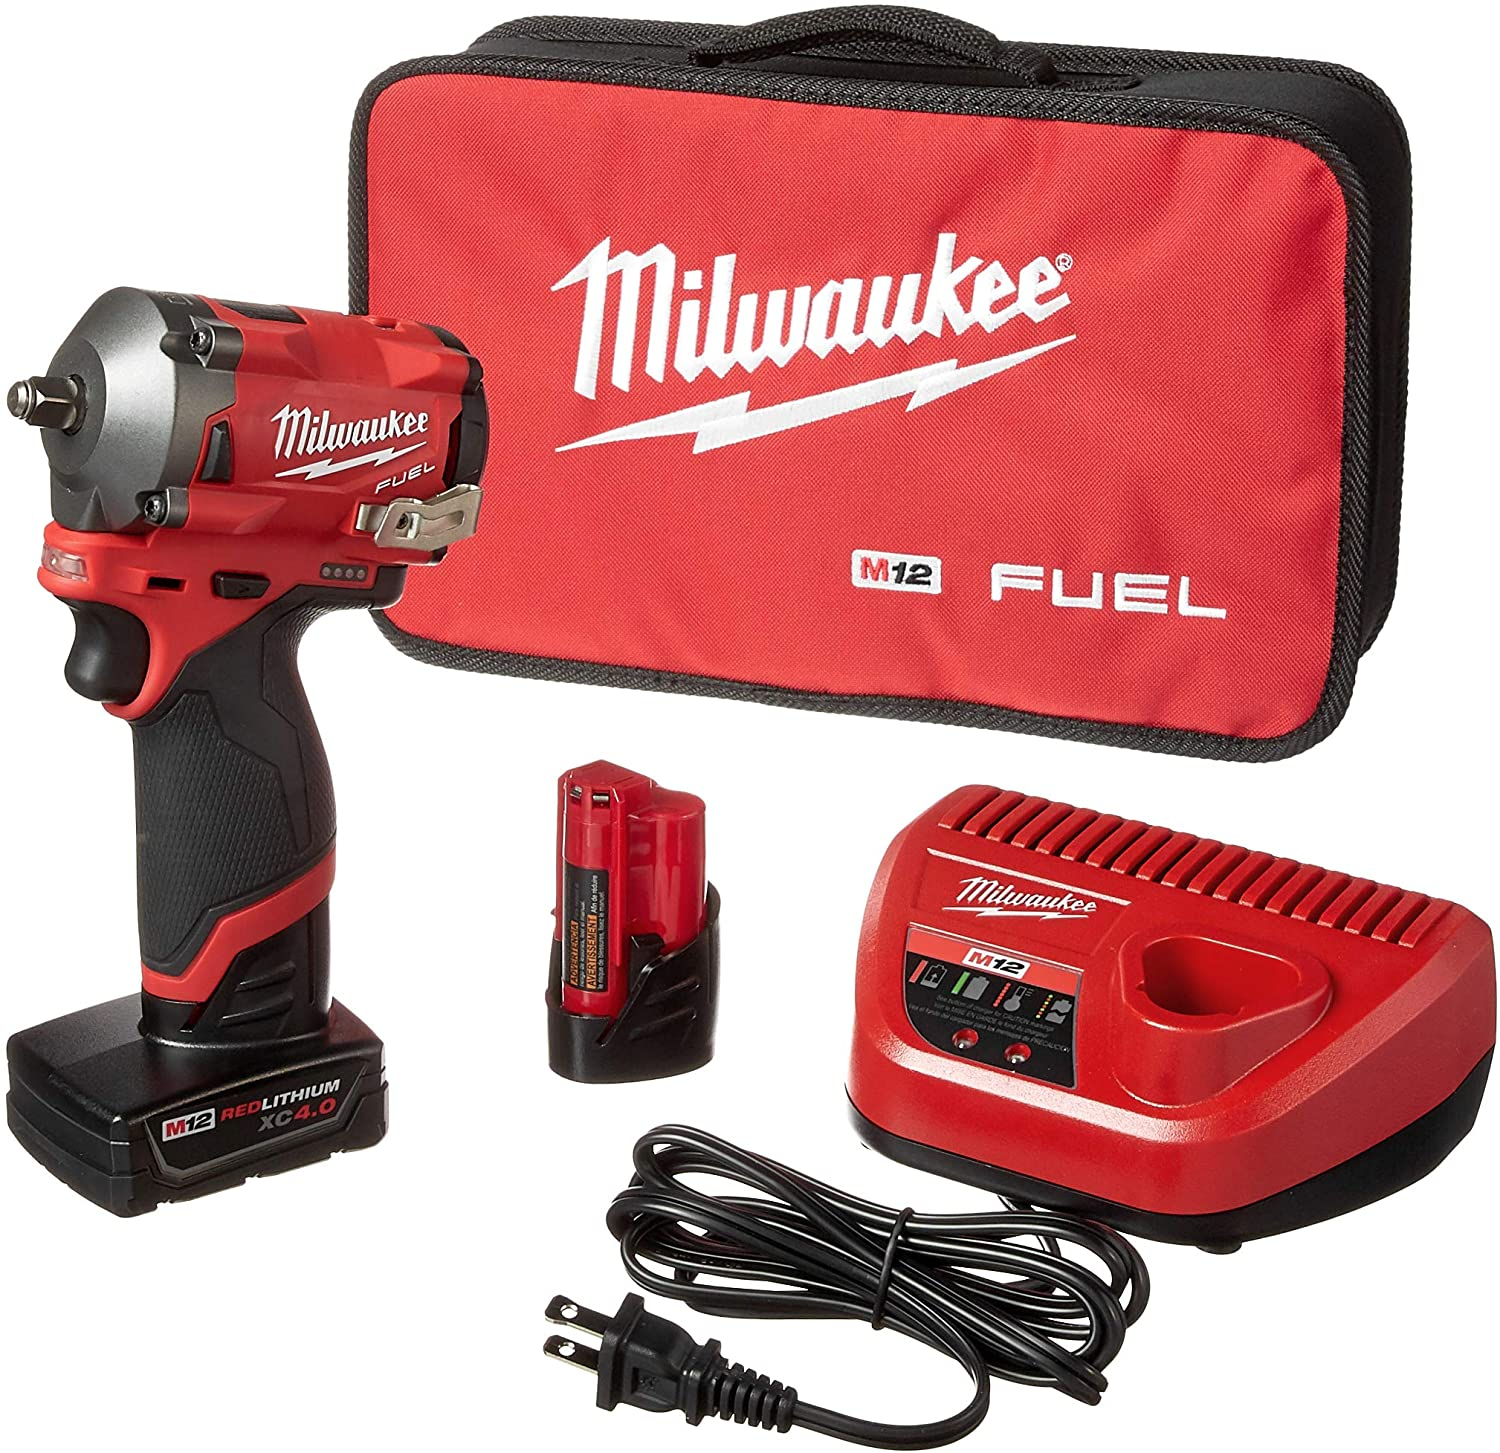 MILWAUKEE M12 3//8 IMPACT SPECIAL BUY  FREE SHIP AND 12 PIECE SOCKET SET INCLUDED